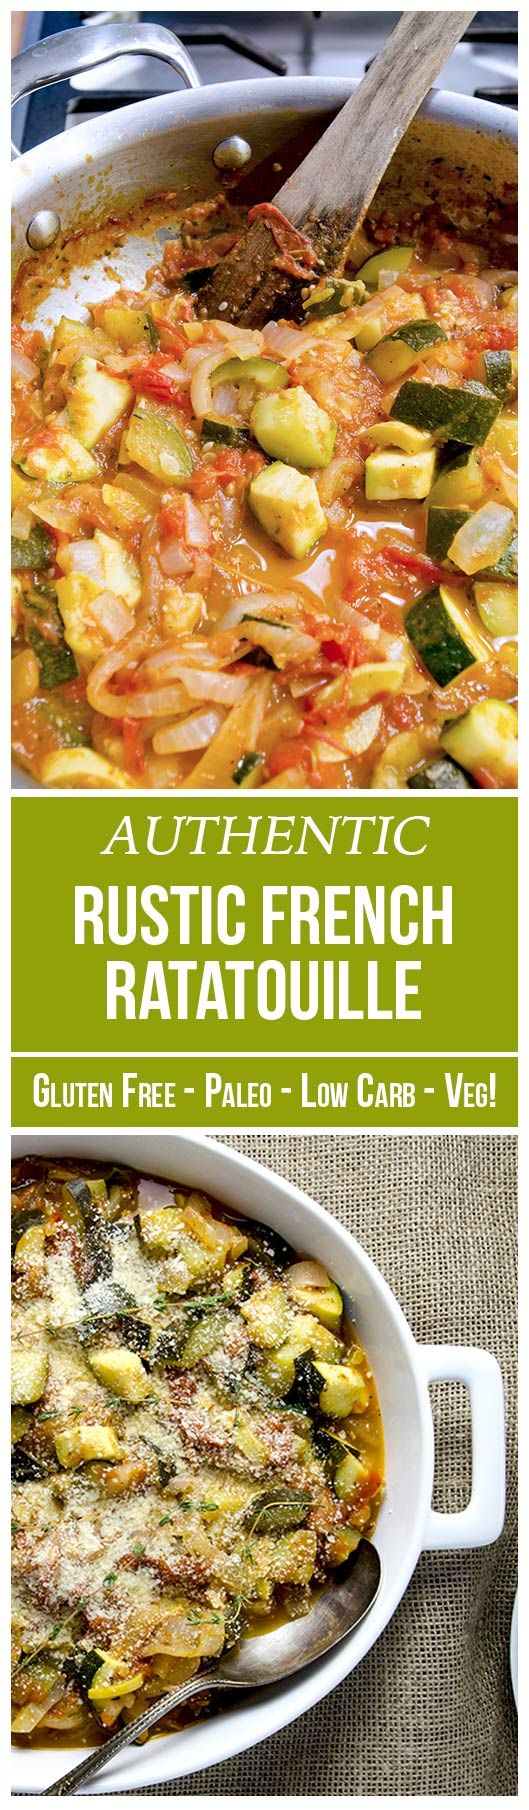 "If you liked the Pixar animated movie, you will fall in love with this provençal ratatouille recipe. It's French and it's classic. A healthy low-carb dish made of five fresh ingredients, herbs de Provence, and some spices. You'll be amazed by how little it takes to build so much flavor! Skip the parmesan and you have a delicious vegan recipe. Chef Gusteau from Ratatouille said: ""Anyone can cook, but only the fearless can be great!"" So be fearless and start cooking this savory recipe!"